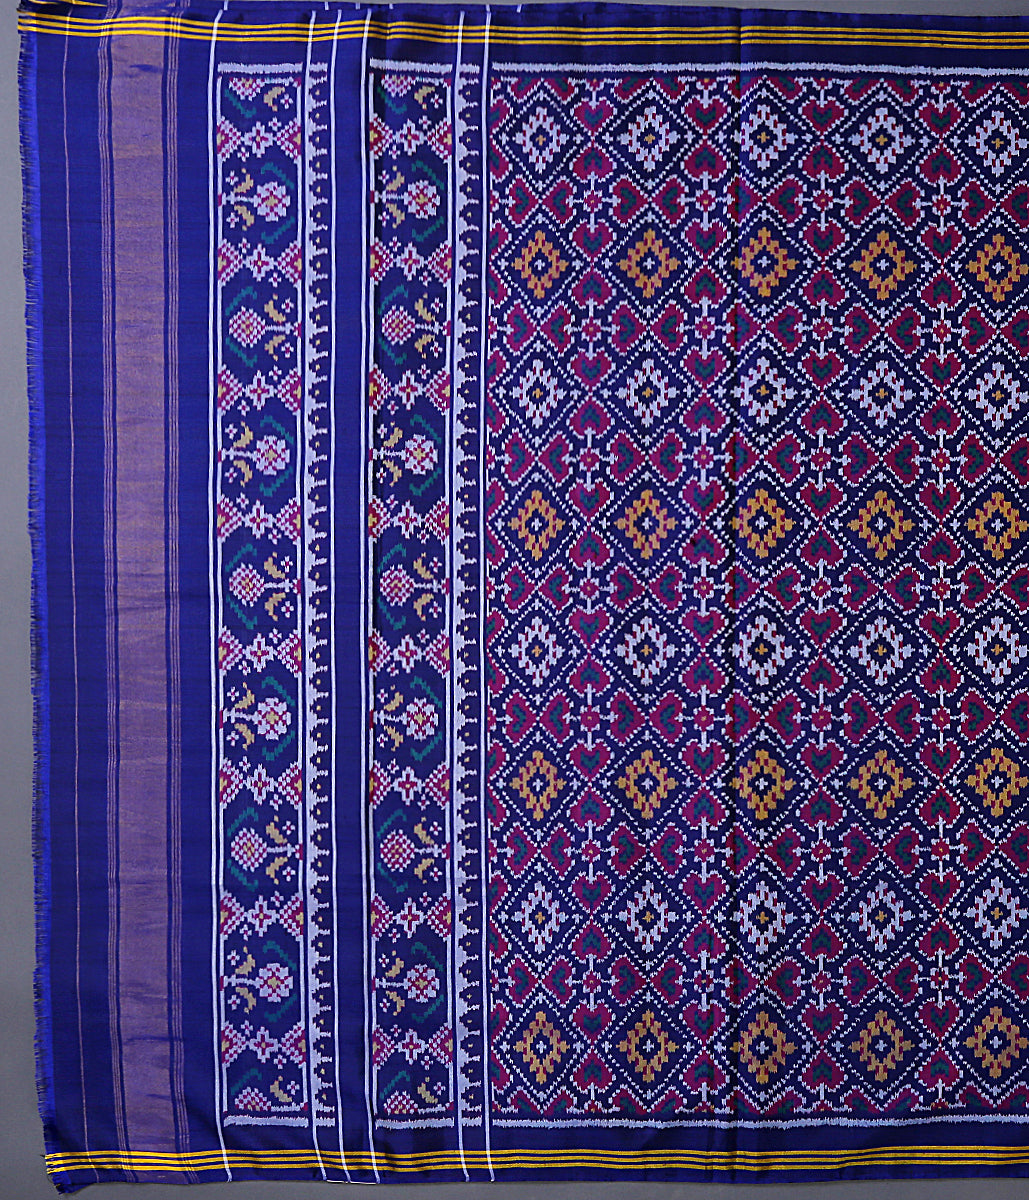 Blue single ikat 8 ply patola dupatta